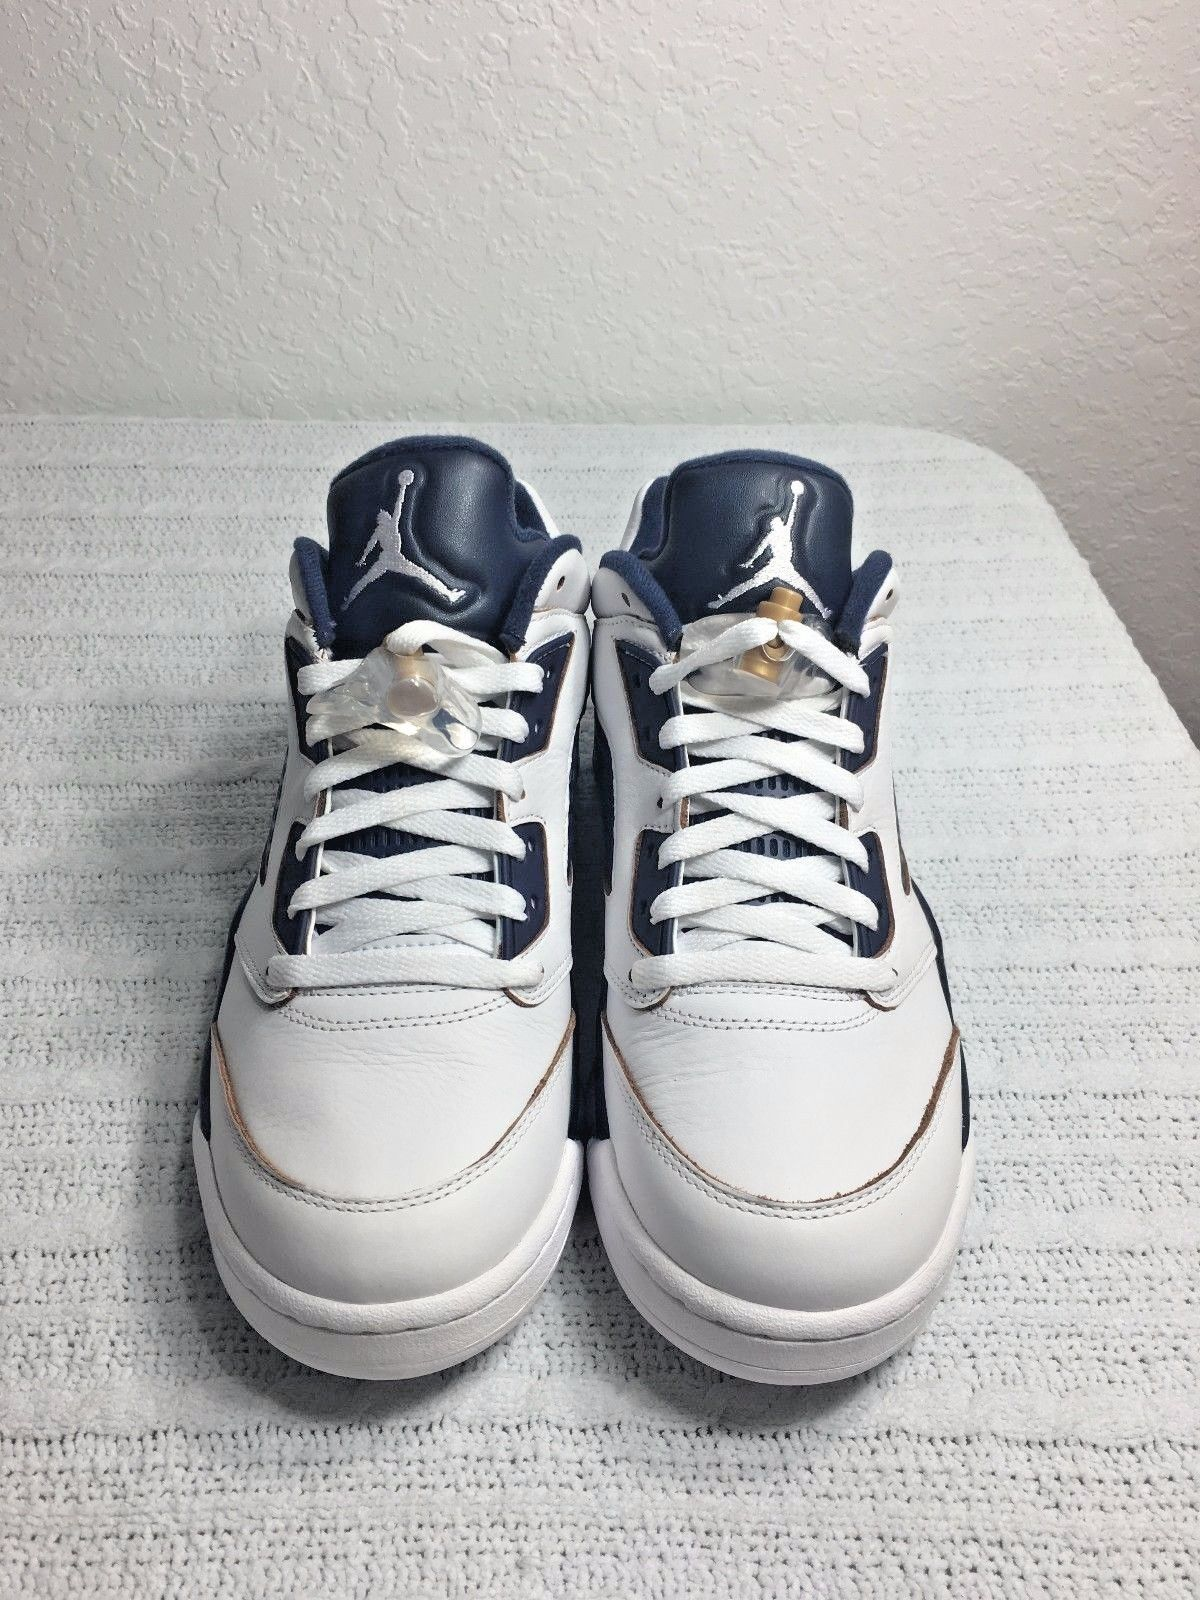 premium selection 5e1f5 7a4b4 NIKE AIR JORDAN 5 RETRO LOW DUNK FROM ABOVE MEN SIZE 10 NEW 819171 135